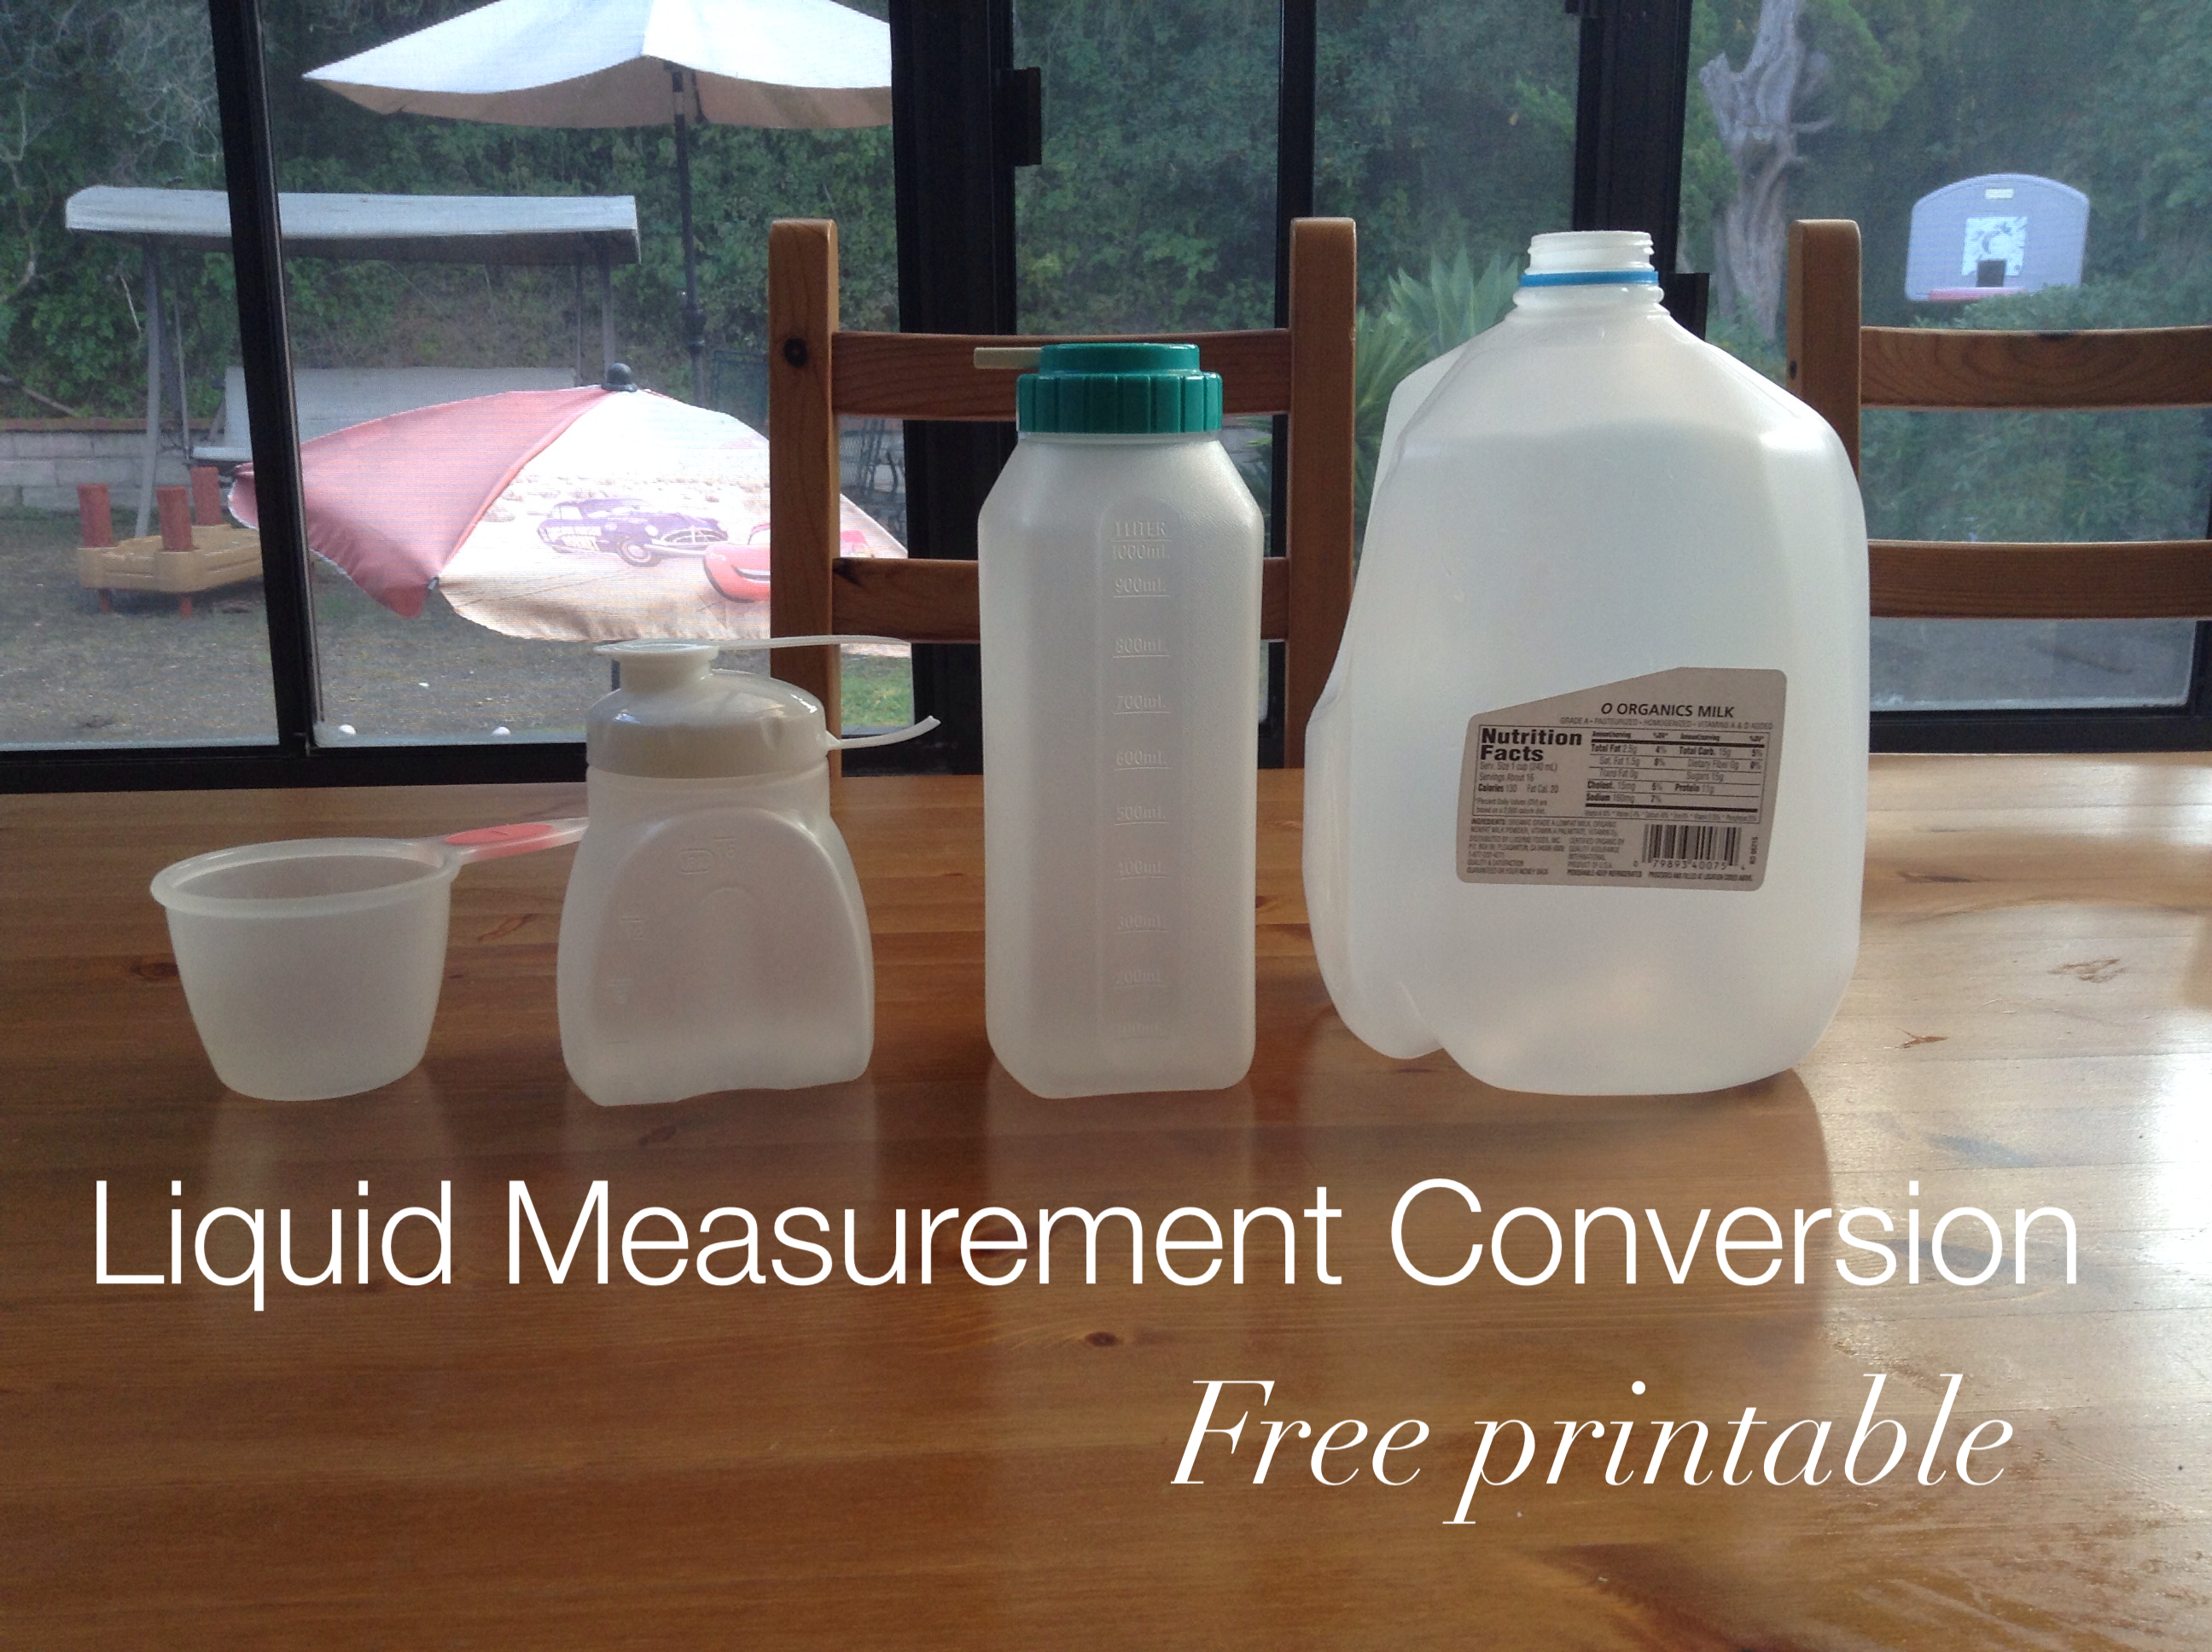 Liquid Measurements Chart | Liquid Measurement Conversion Activity Empowering Parents To Teach